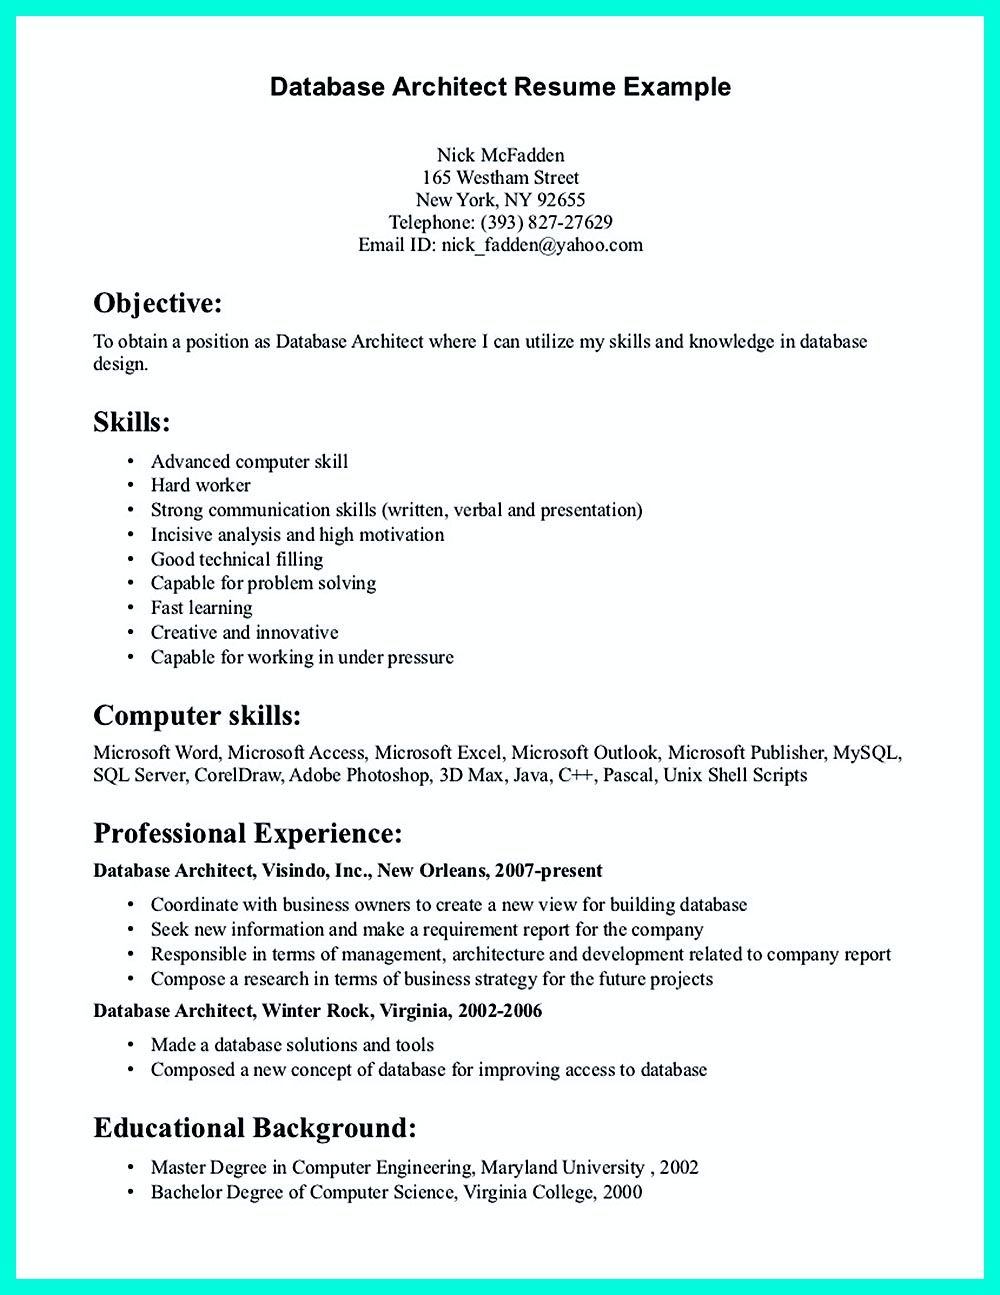 What To Put Under Skills On Resume In The Data Architect Resume One Must Describe The Professional